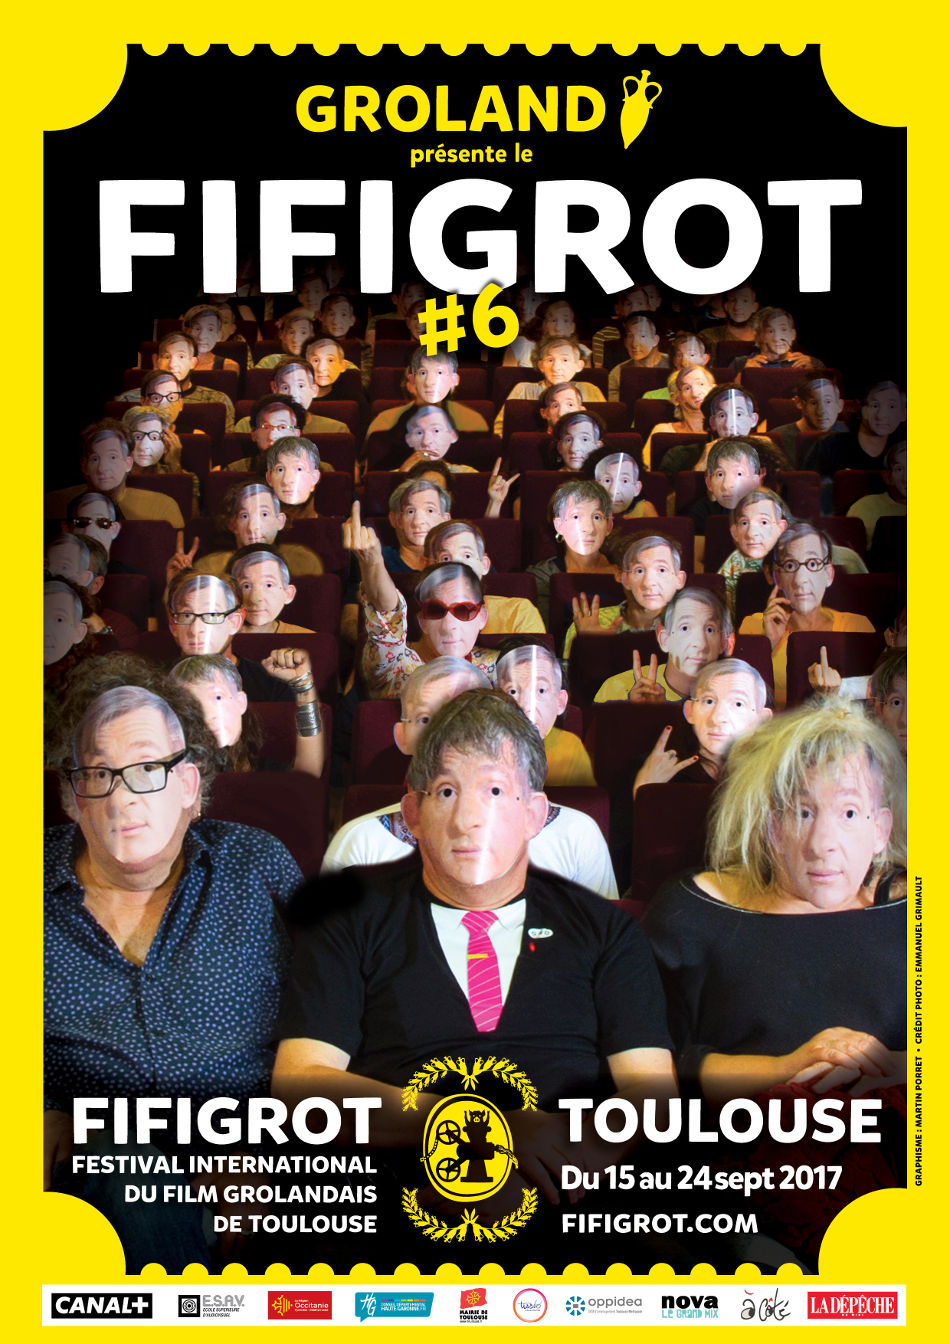 Fifigrot 2017